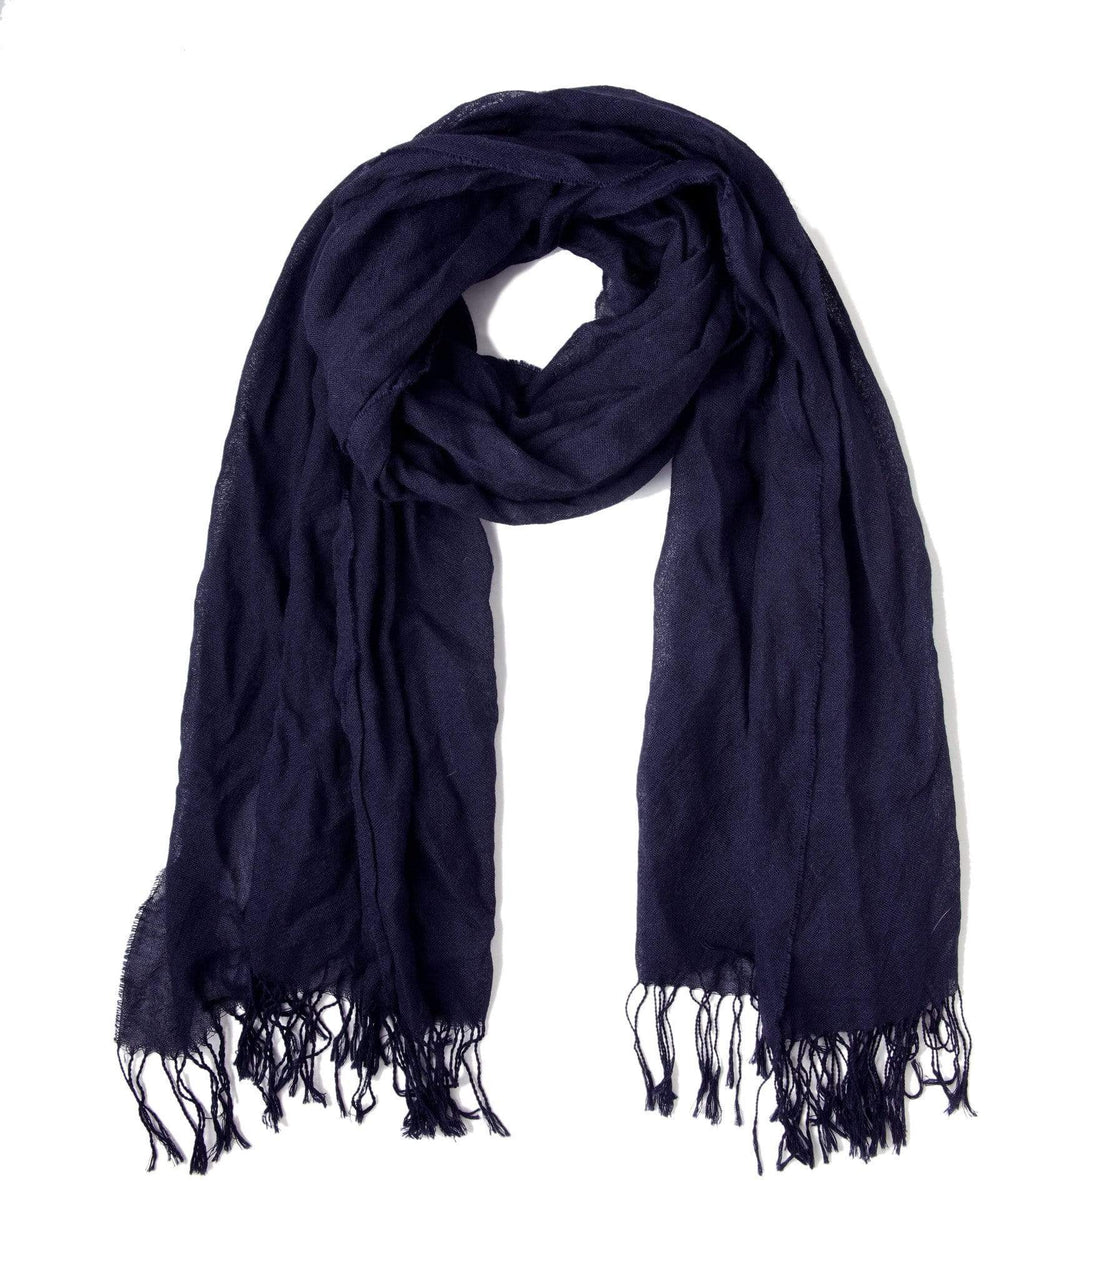 Johanna Howard Home Hats, Gloves & Scarves Navy Whisper Weight Scarf